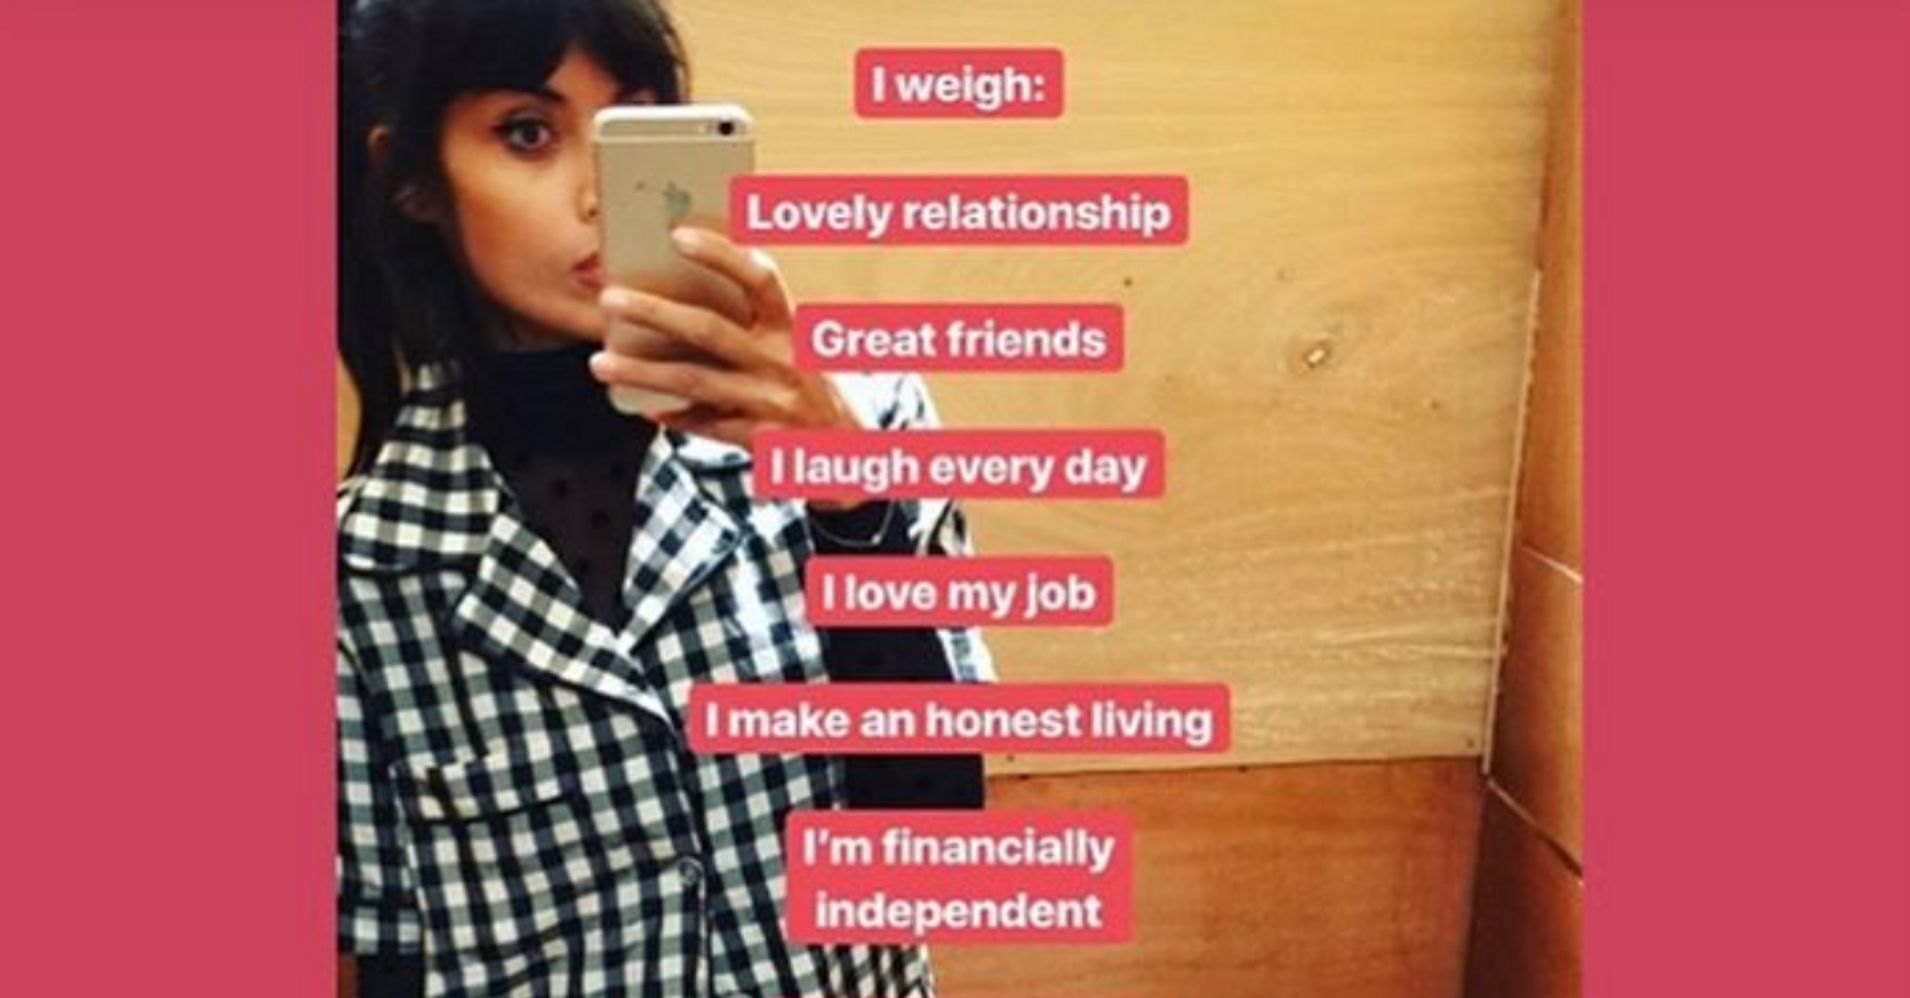 Jameela Jamil's 'I Weigh' Instagram Celebrates Body Positivity, Self-Worth